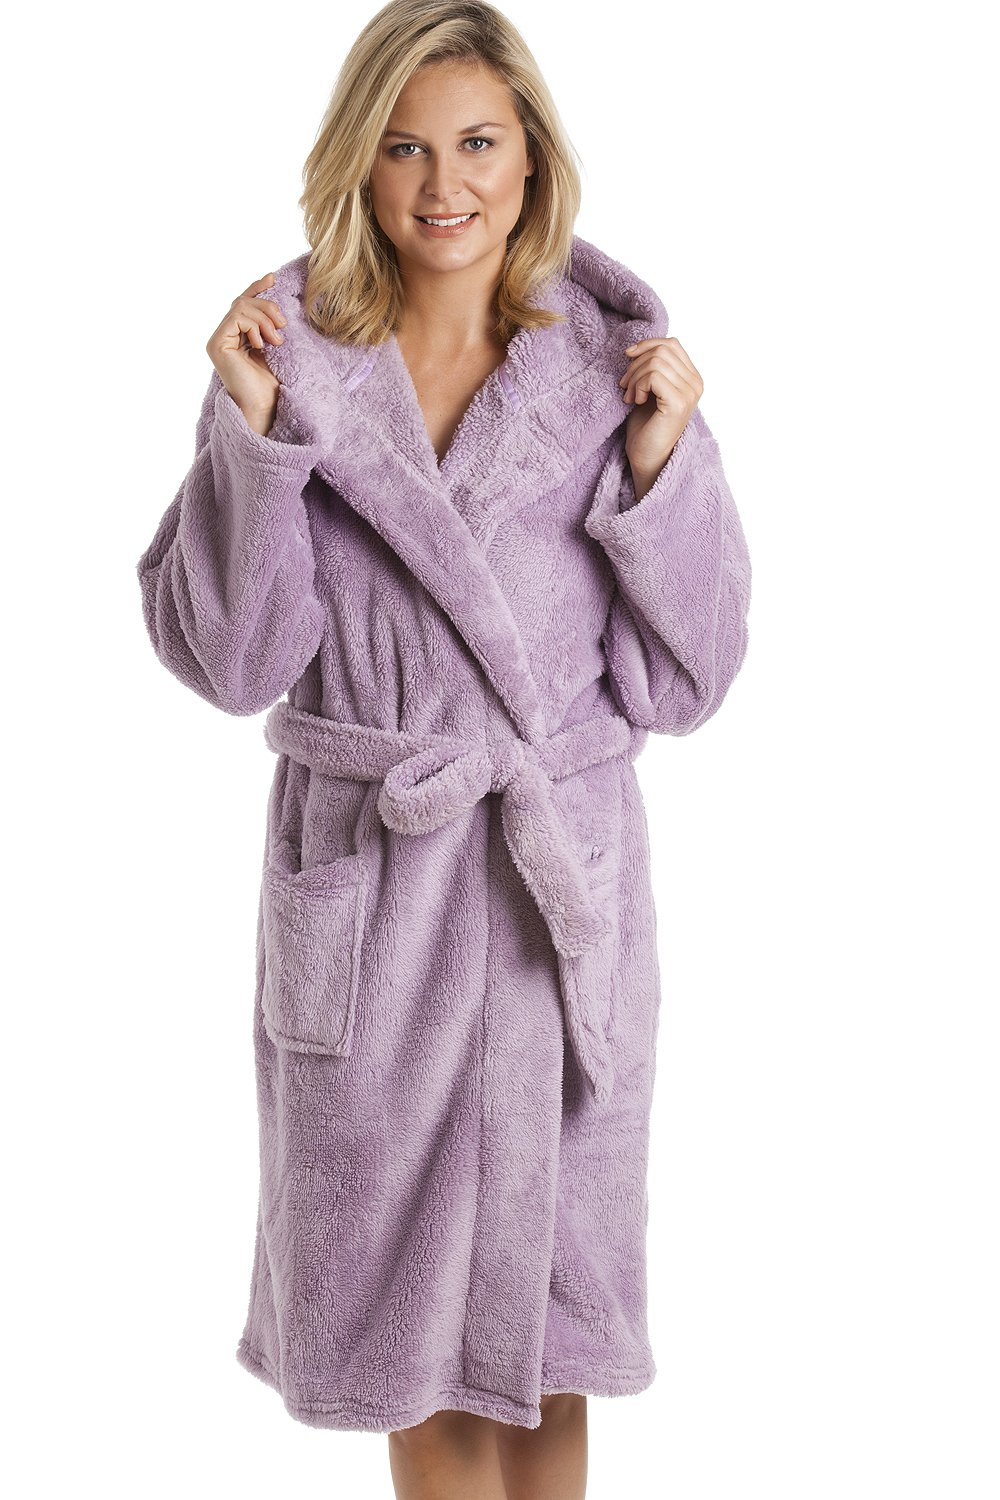 This comfortable ladies fleece bathrobe is sure to keep you warm, dry and cozy. The bathrobe flashes true Seminole spirit with its FSU logo and vibrant red color. It also has two pockets on the front to let you conveniently store a cell phone or wallet.